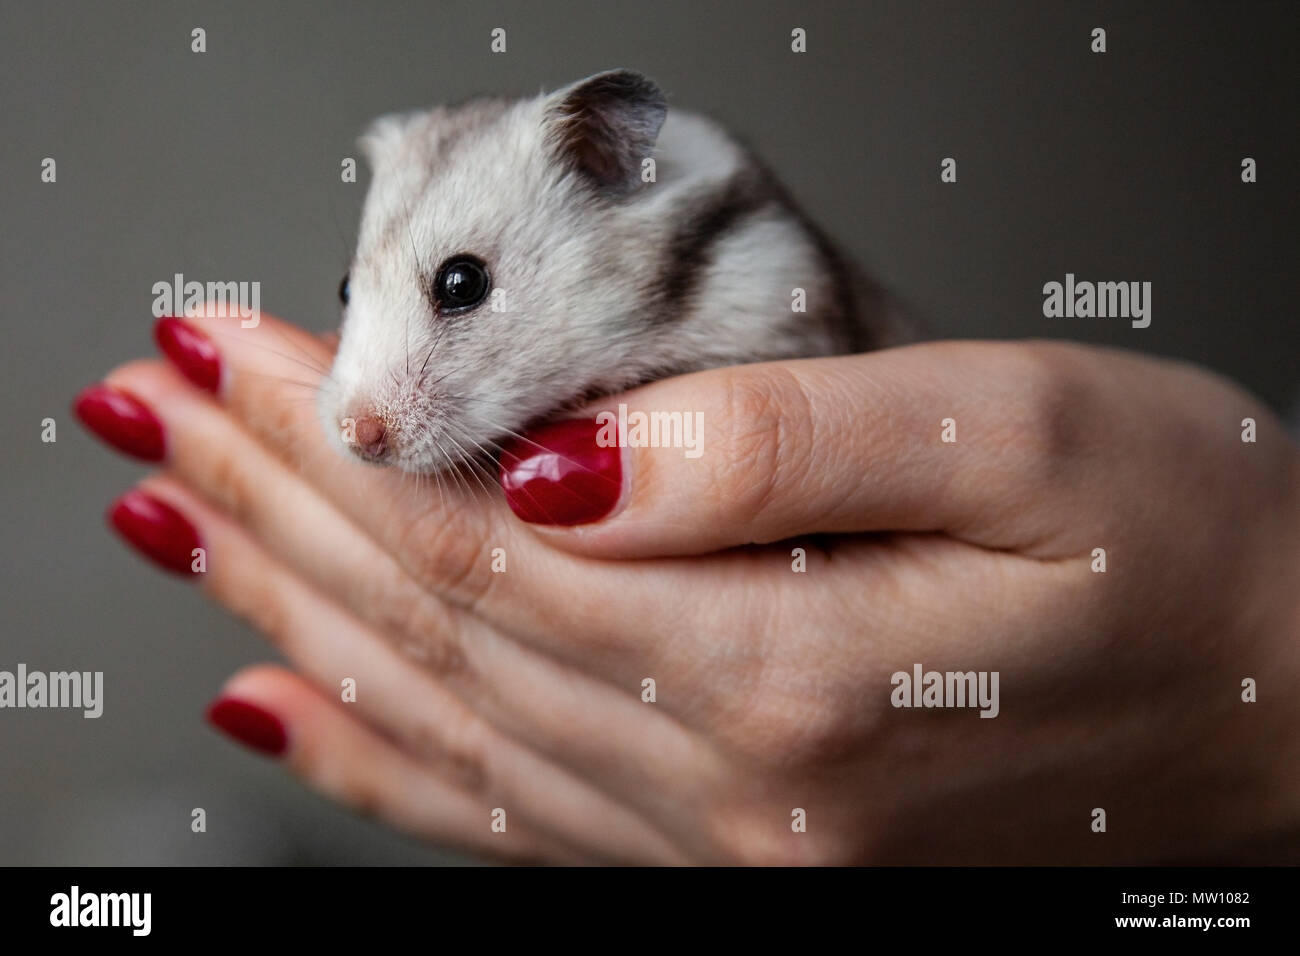 Cute hamster in the hands of a girl Stock Photo